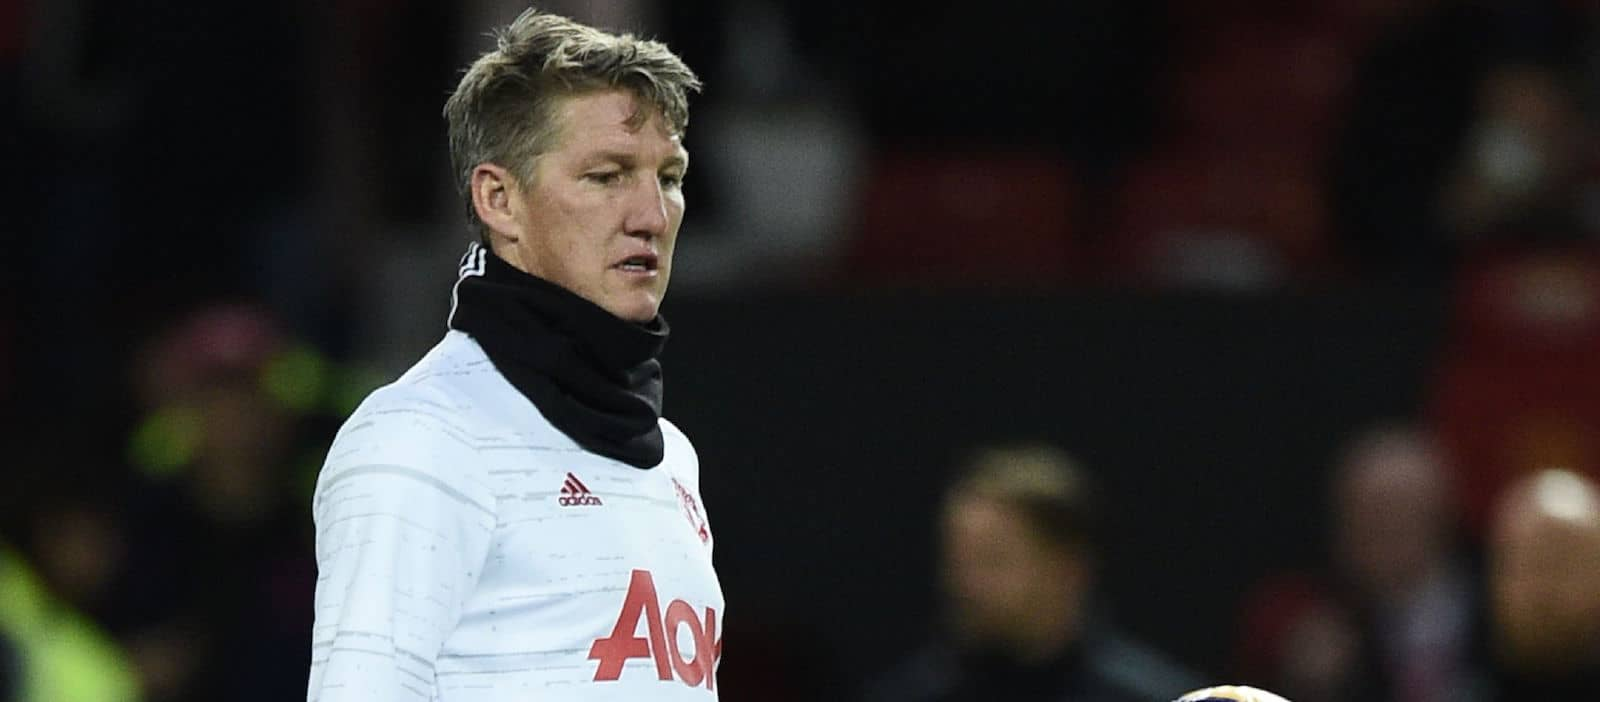 Schweinsteiger sends a message to Manchester United fans after